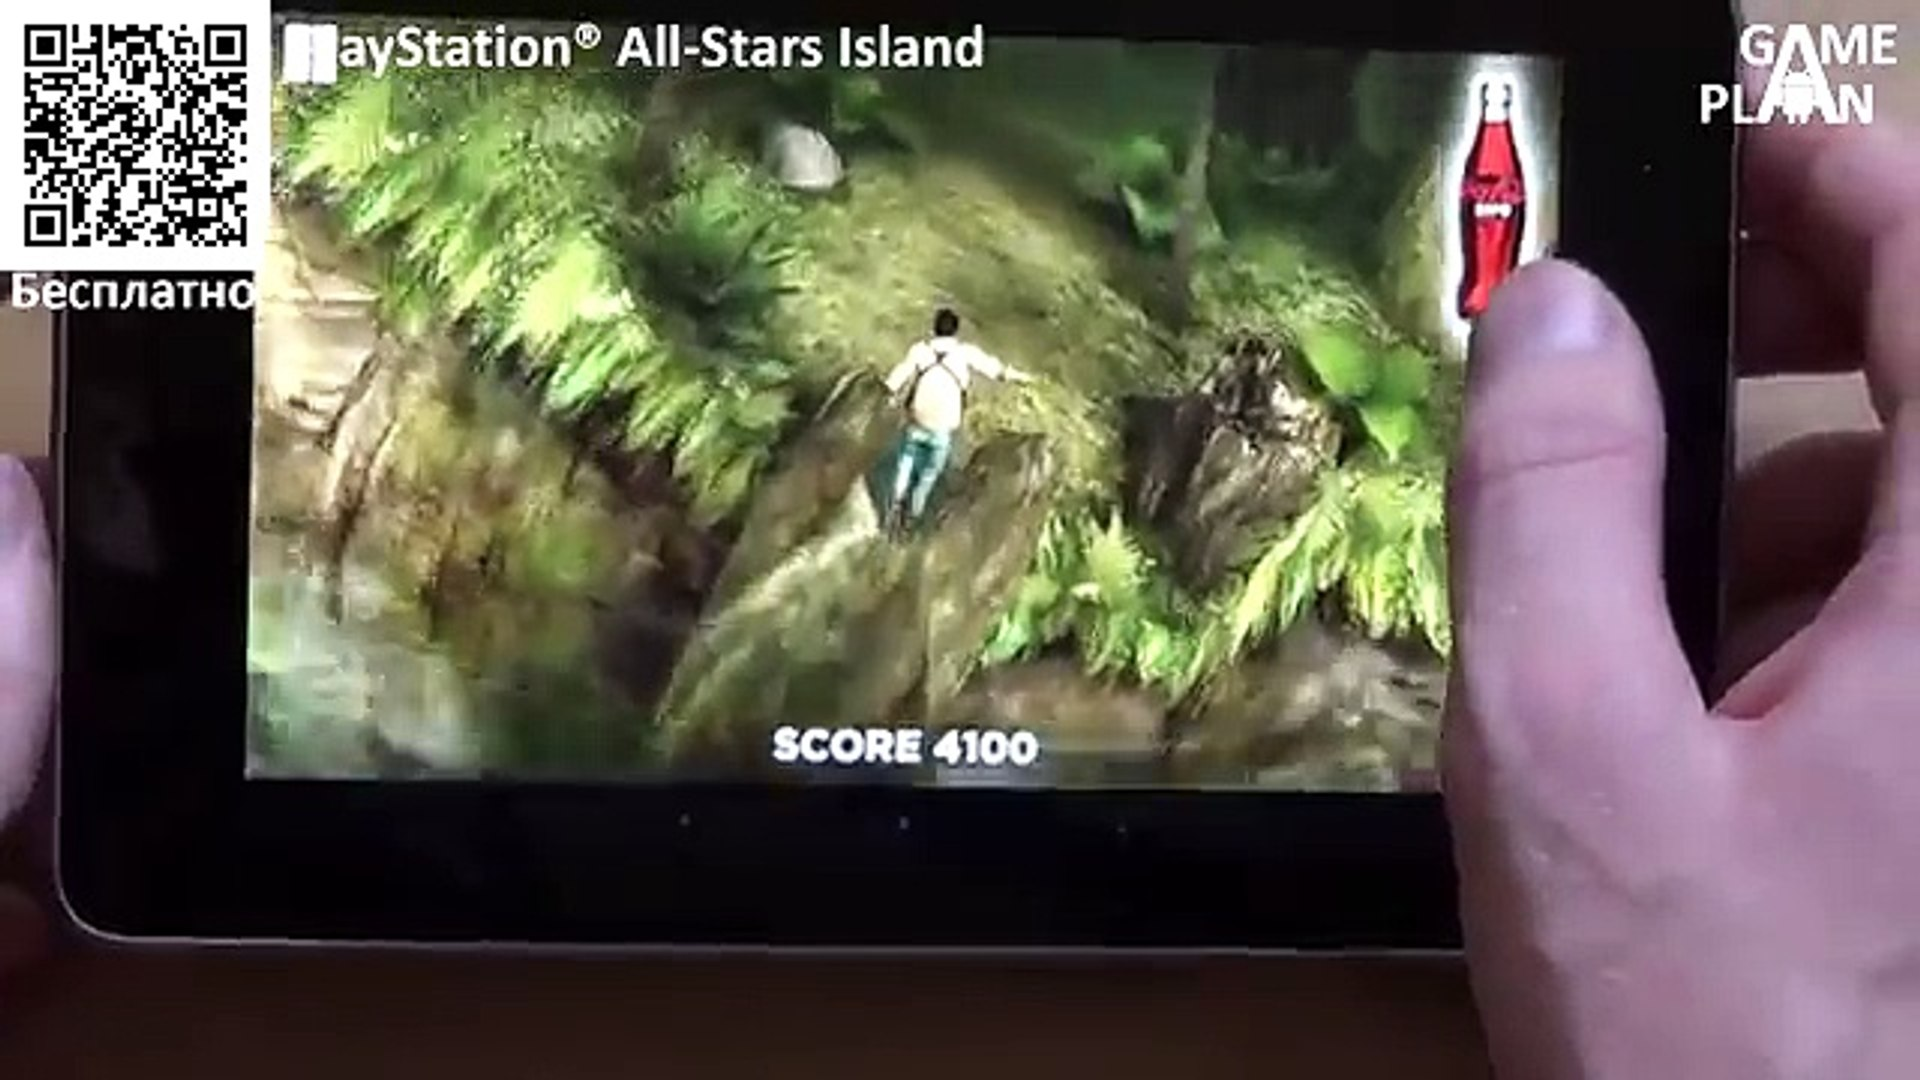 Game Plan #290 PlayStation® All-Stars Island и другие